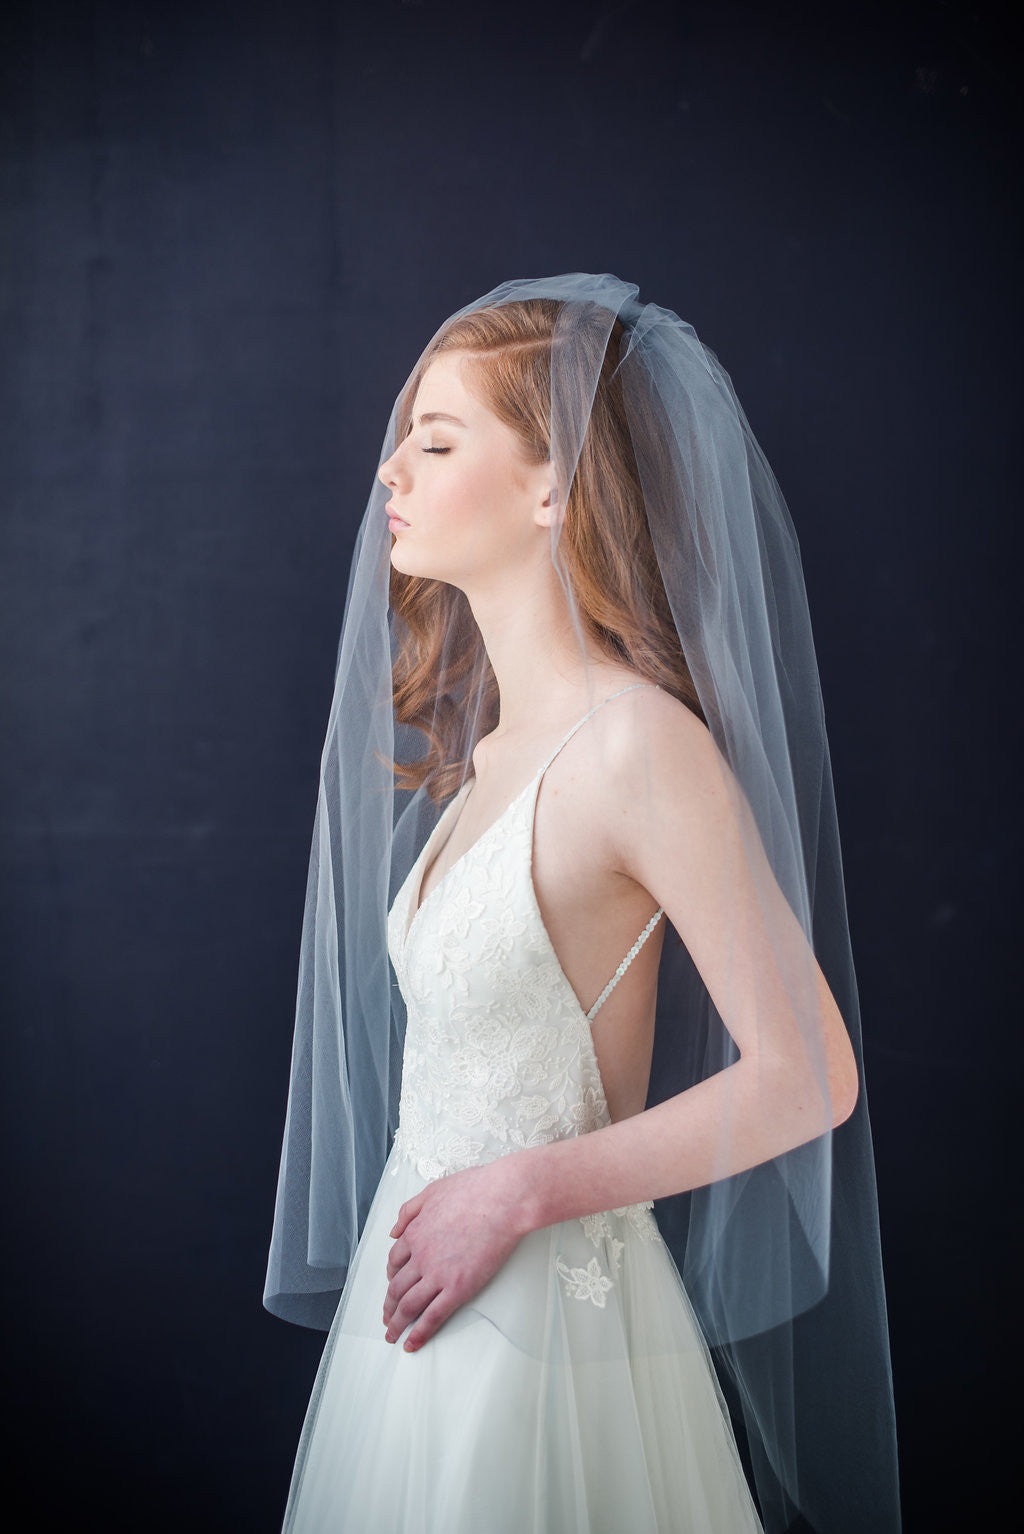 Illusion tulle bridal veil with blusher - Tessa Kim